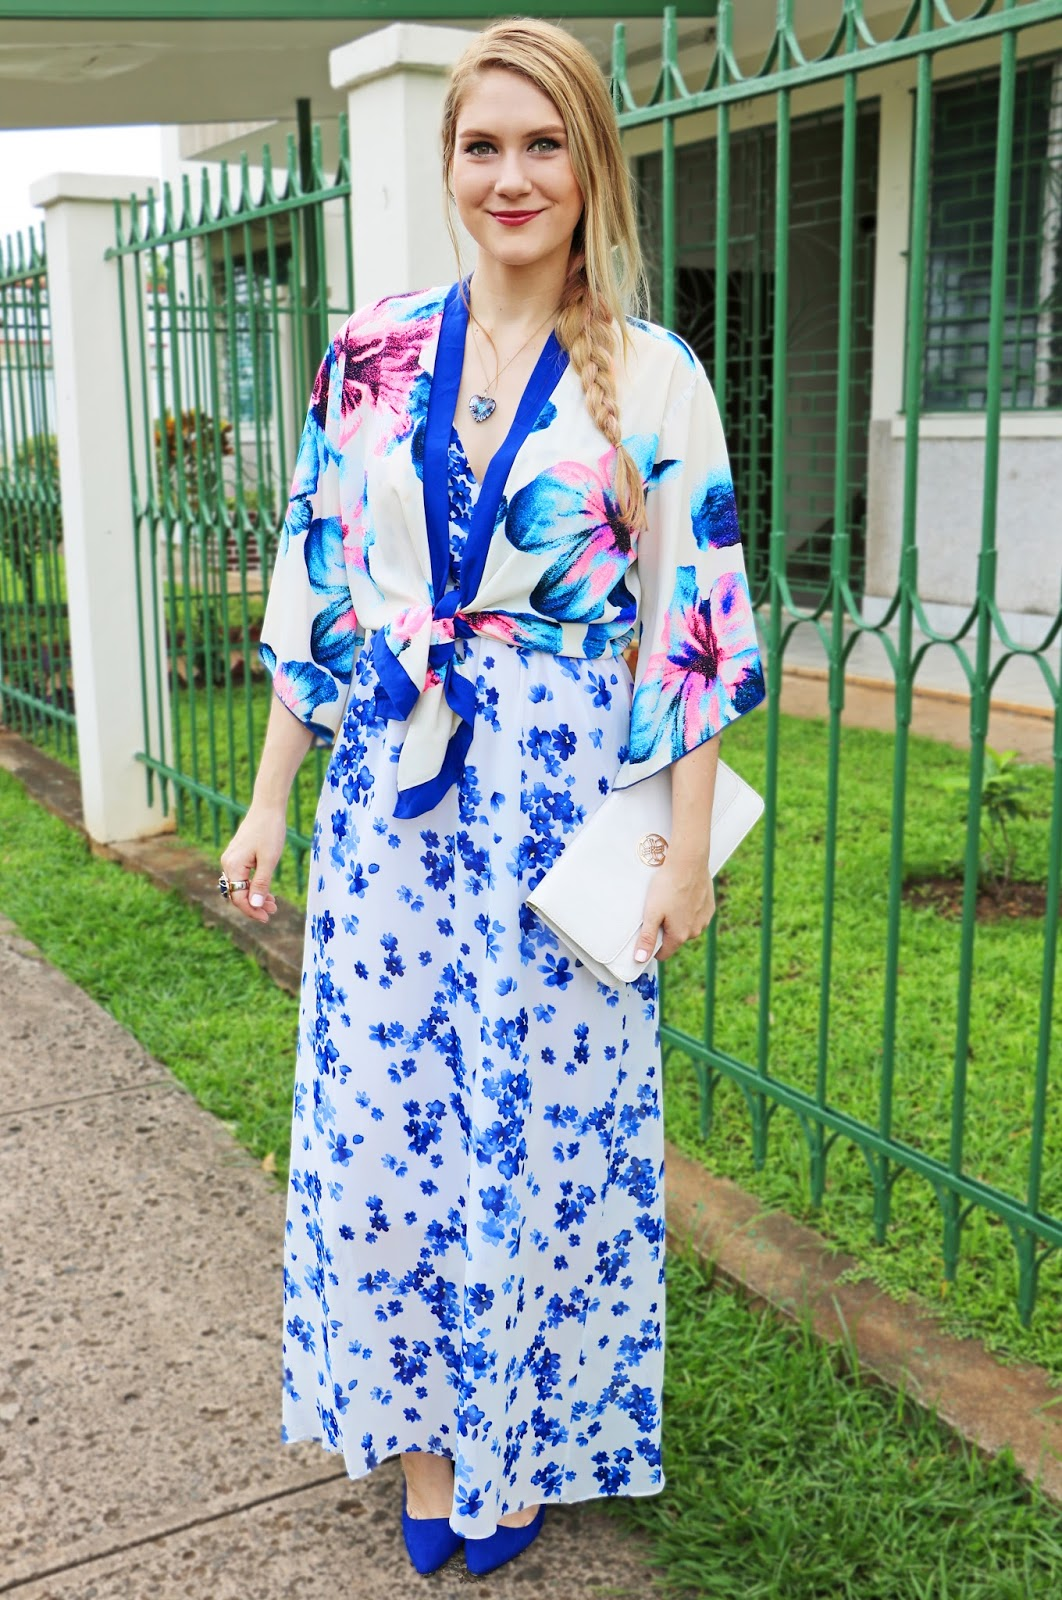 Pair a floral Kimono with a floral dress for a unique Spring outfit